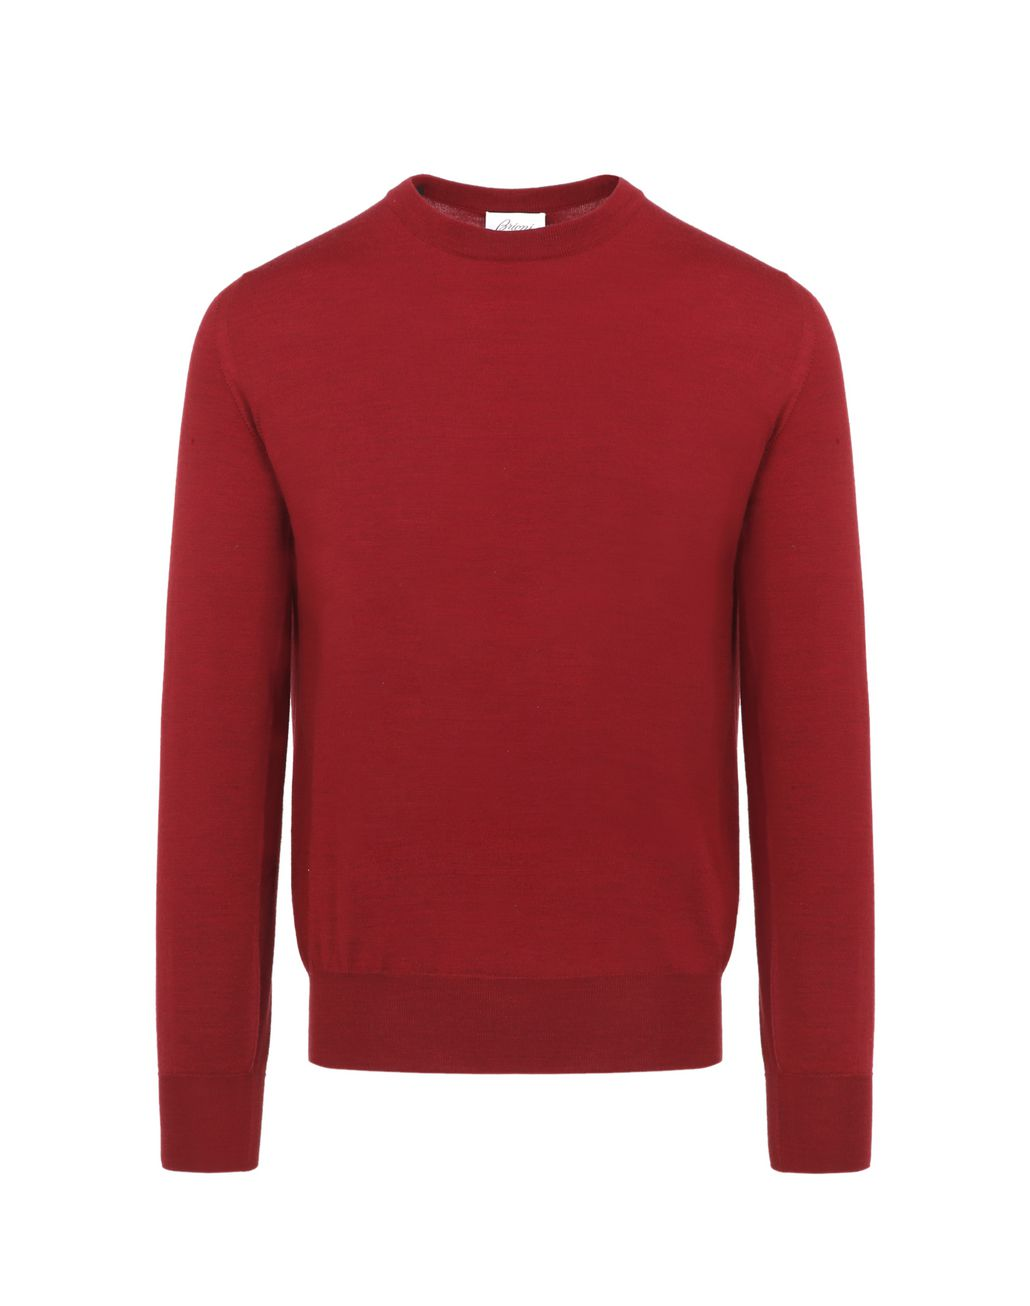 BRIONI Red Crewneck Sweater. Knitwear Man f